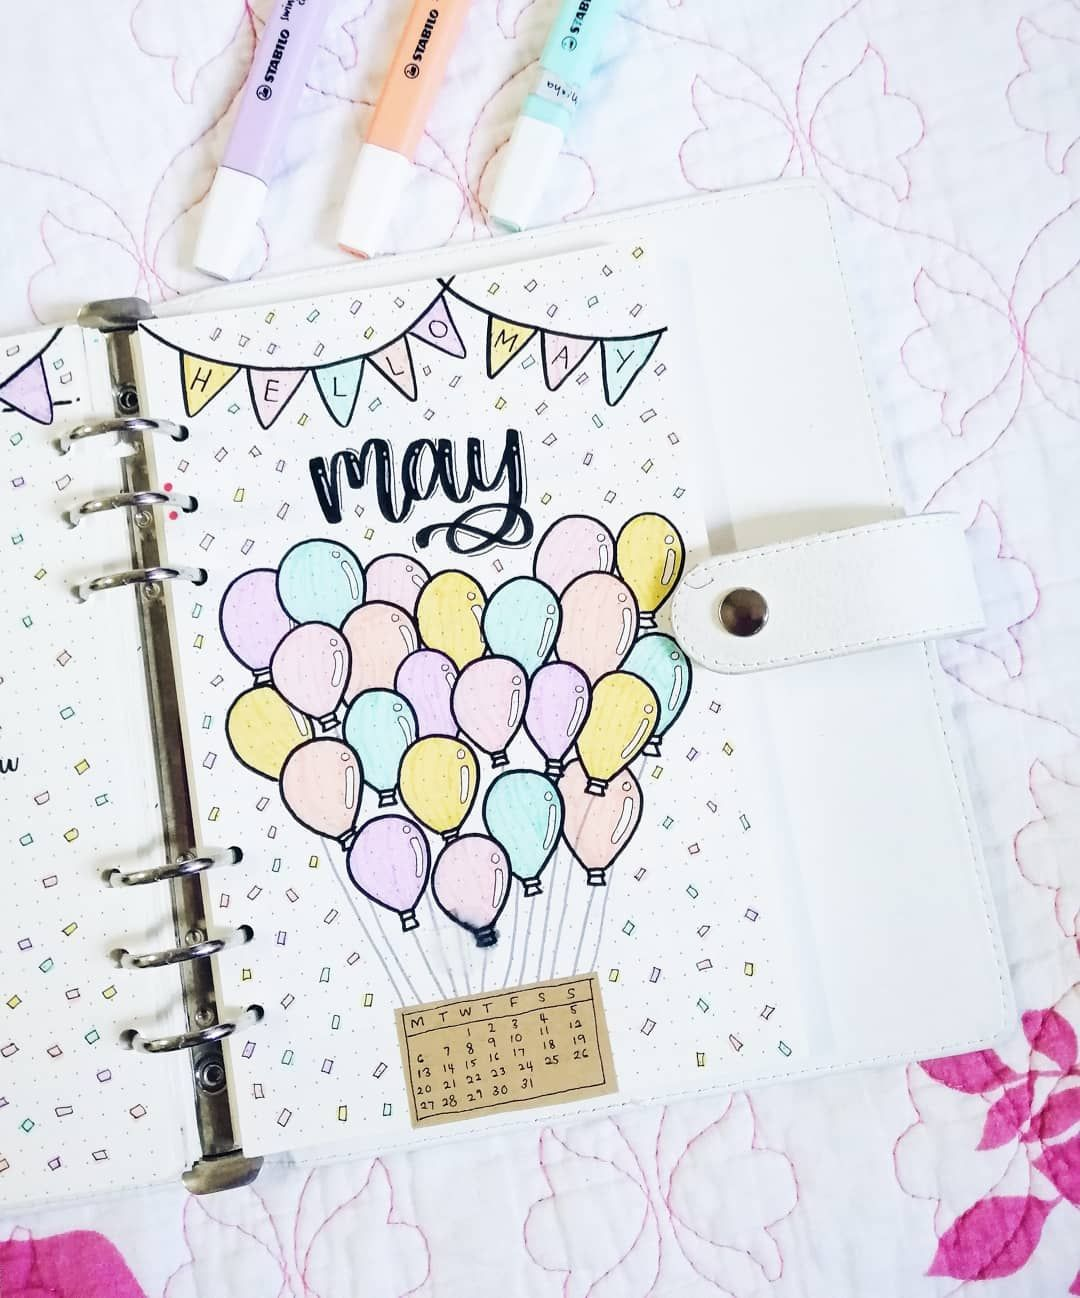 """misha on Instagram: """"So here it is the may coverpage full of balloons 🎈 one of the balloons smeared 😭 . . . . . . . . . . #bulletjournal #bulletjournalspread…"""""""